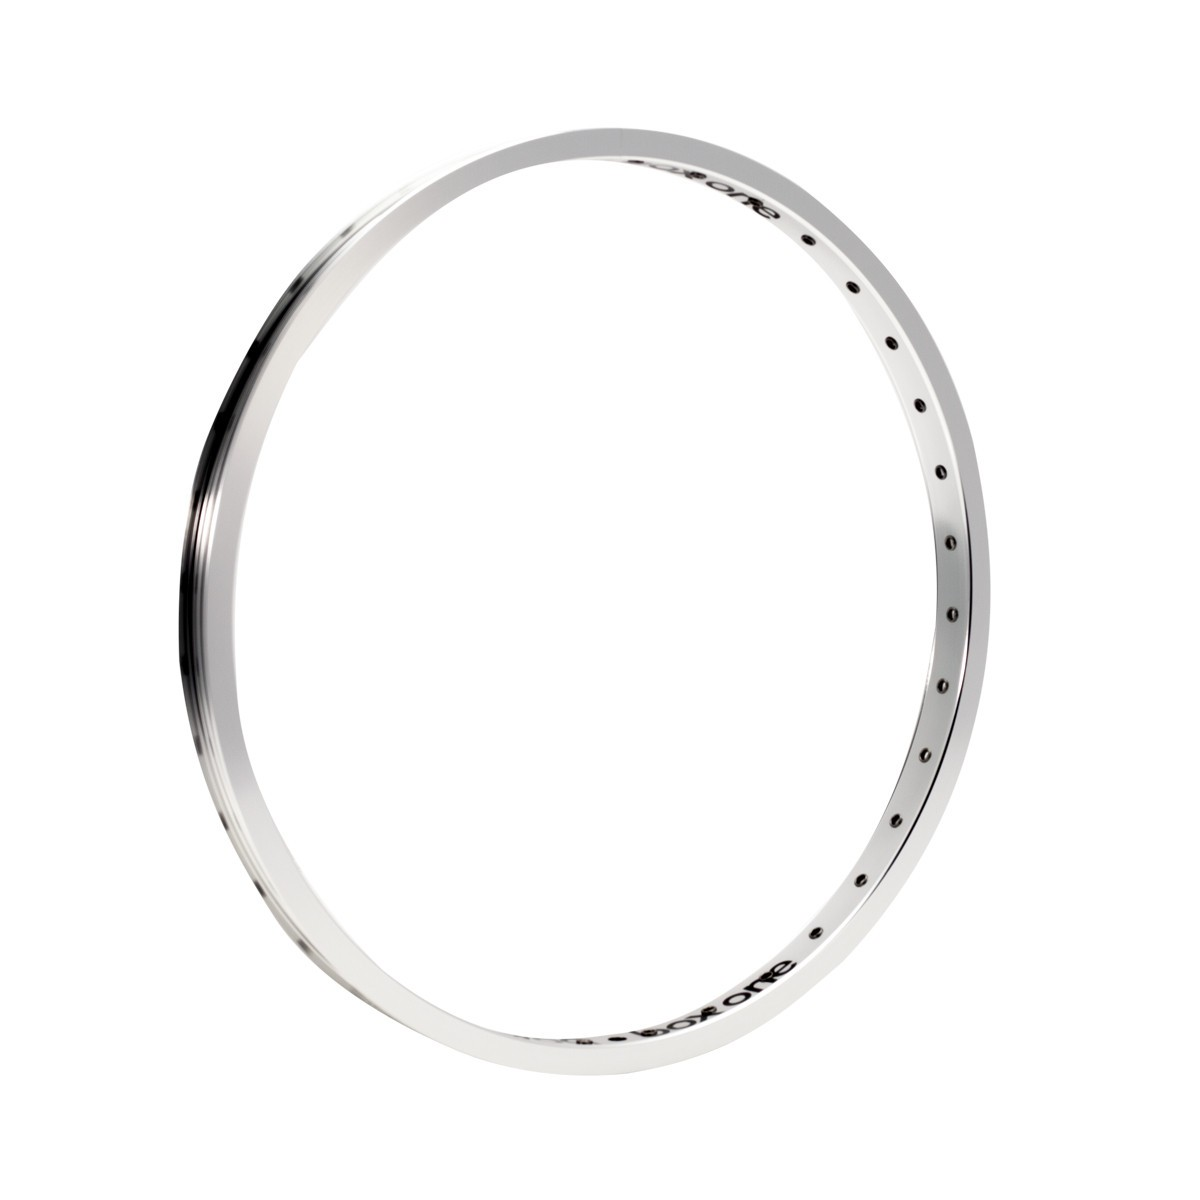 BOX ONE RIM 406X28MM 36H WITH BRAKE SURFACE